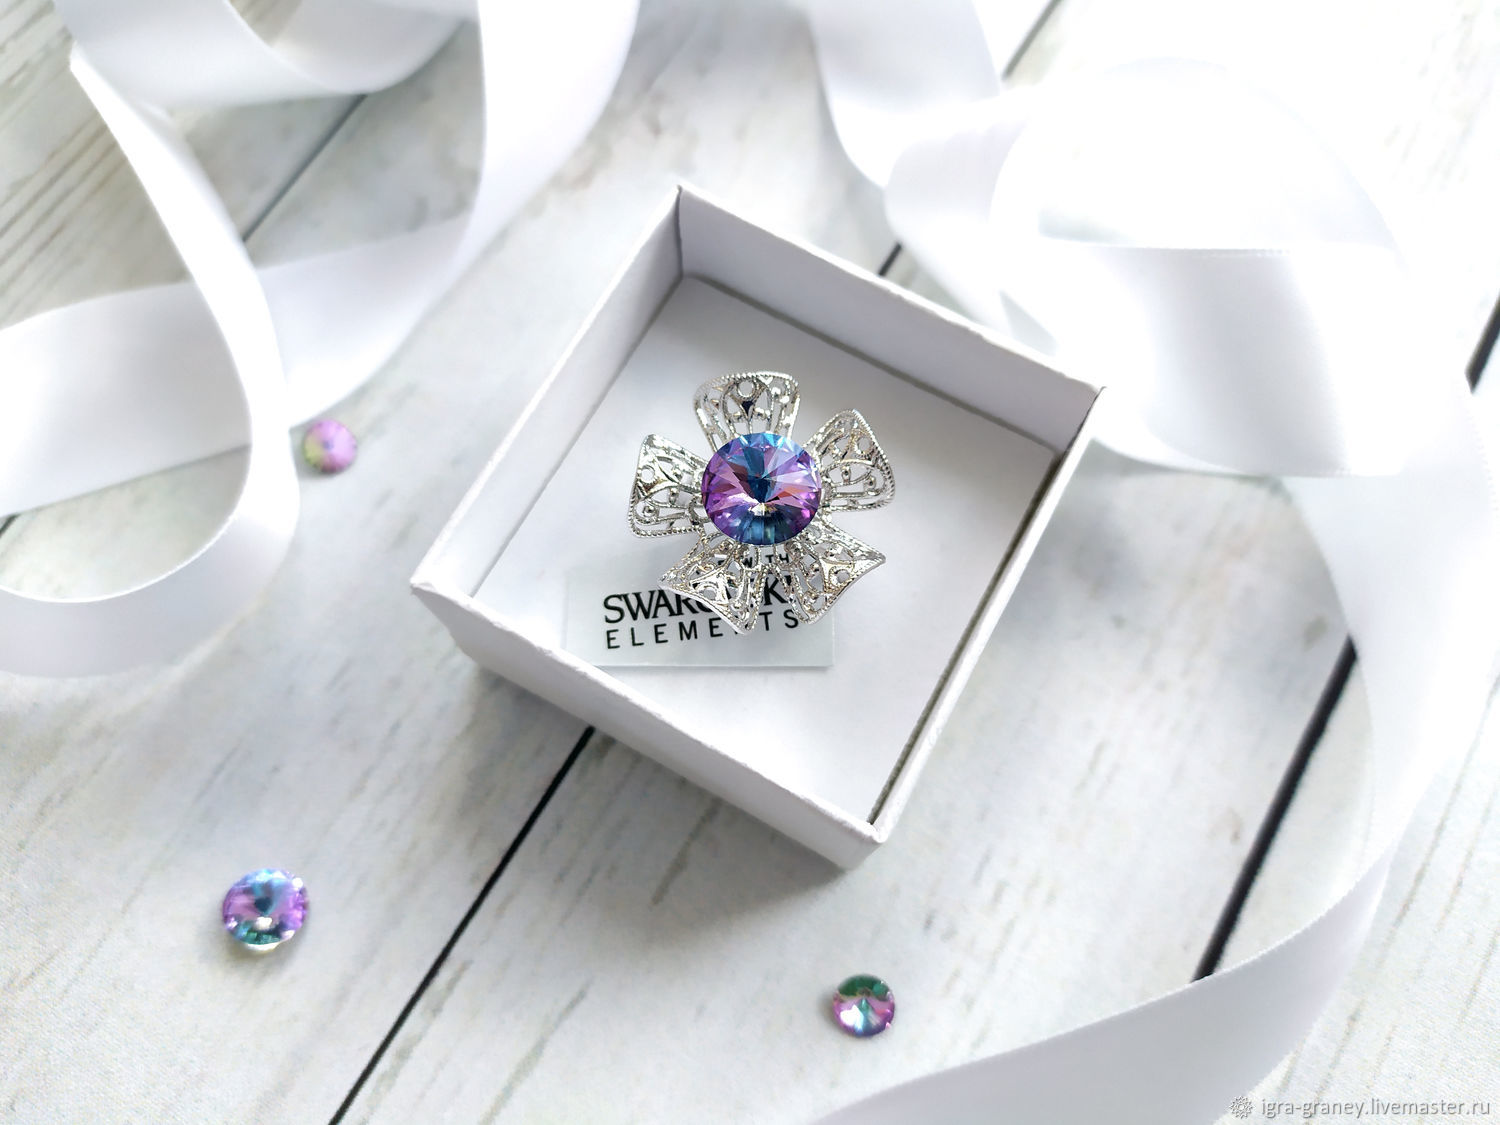 Ring with Swarovski crystal, Rings, Moscow,  Фото №1